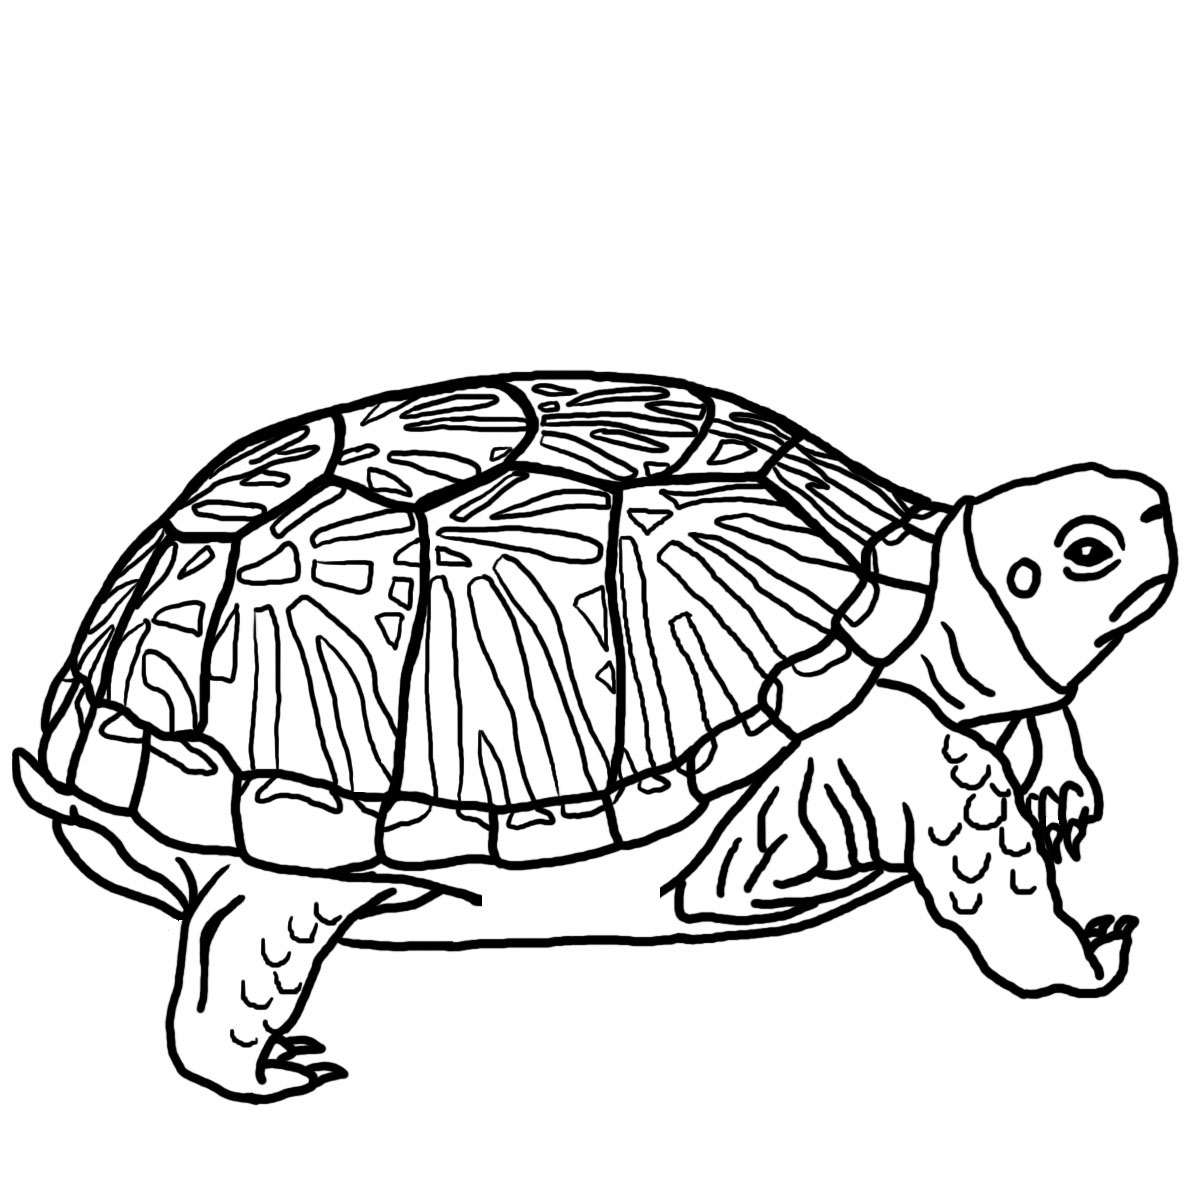 Turtle Shell Pattern Drawing - ClipArt Best